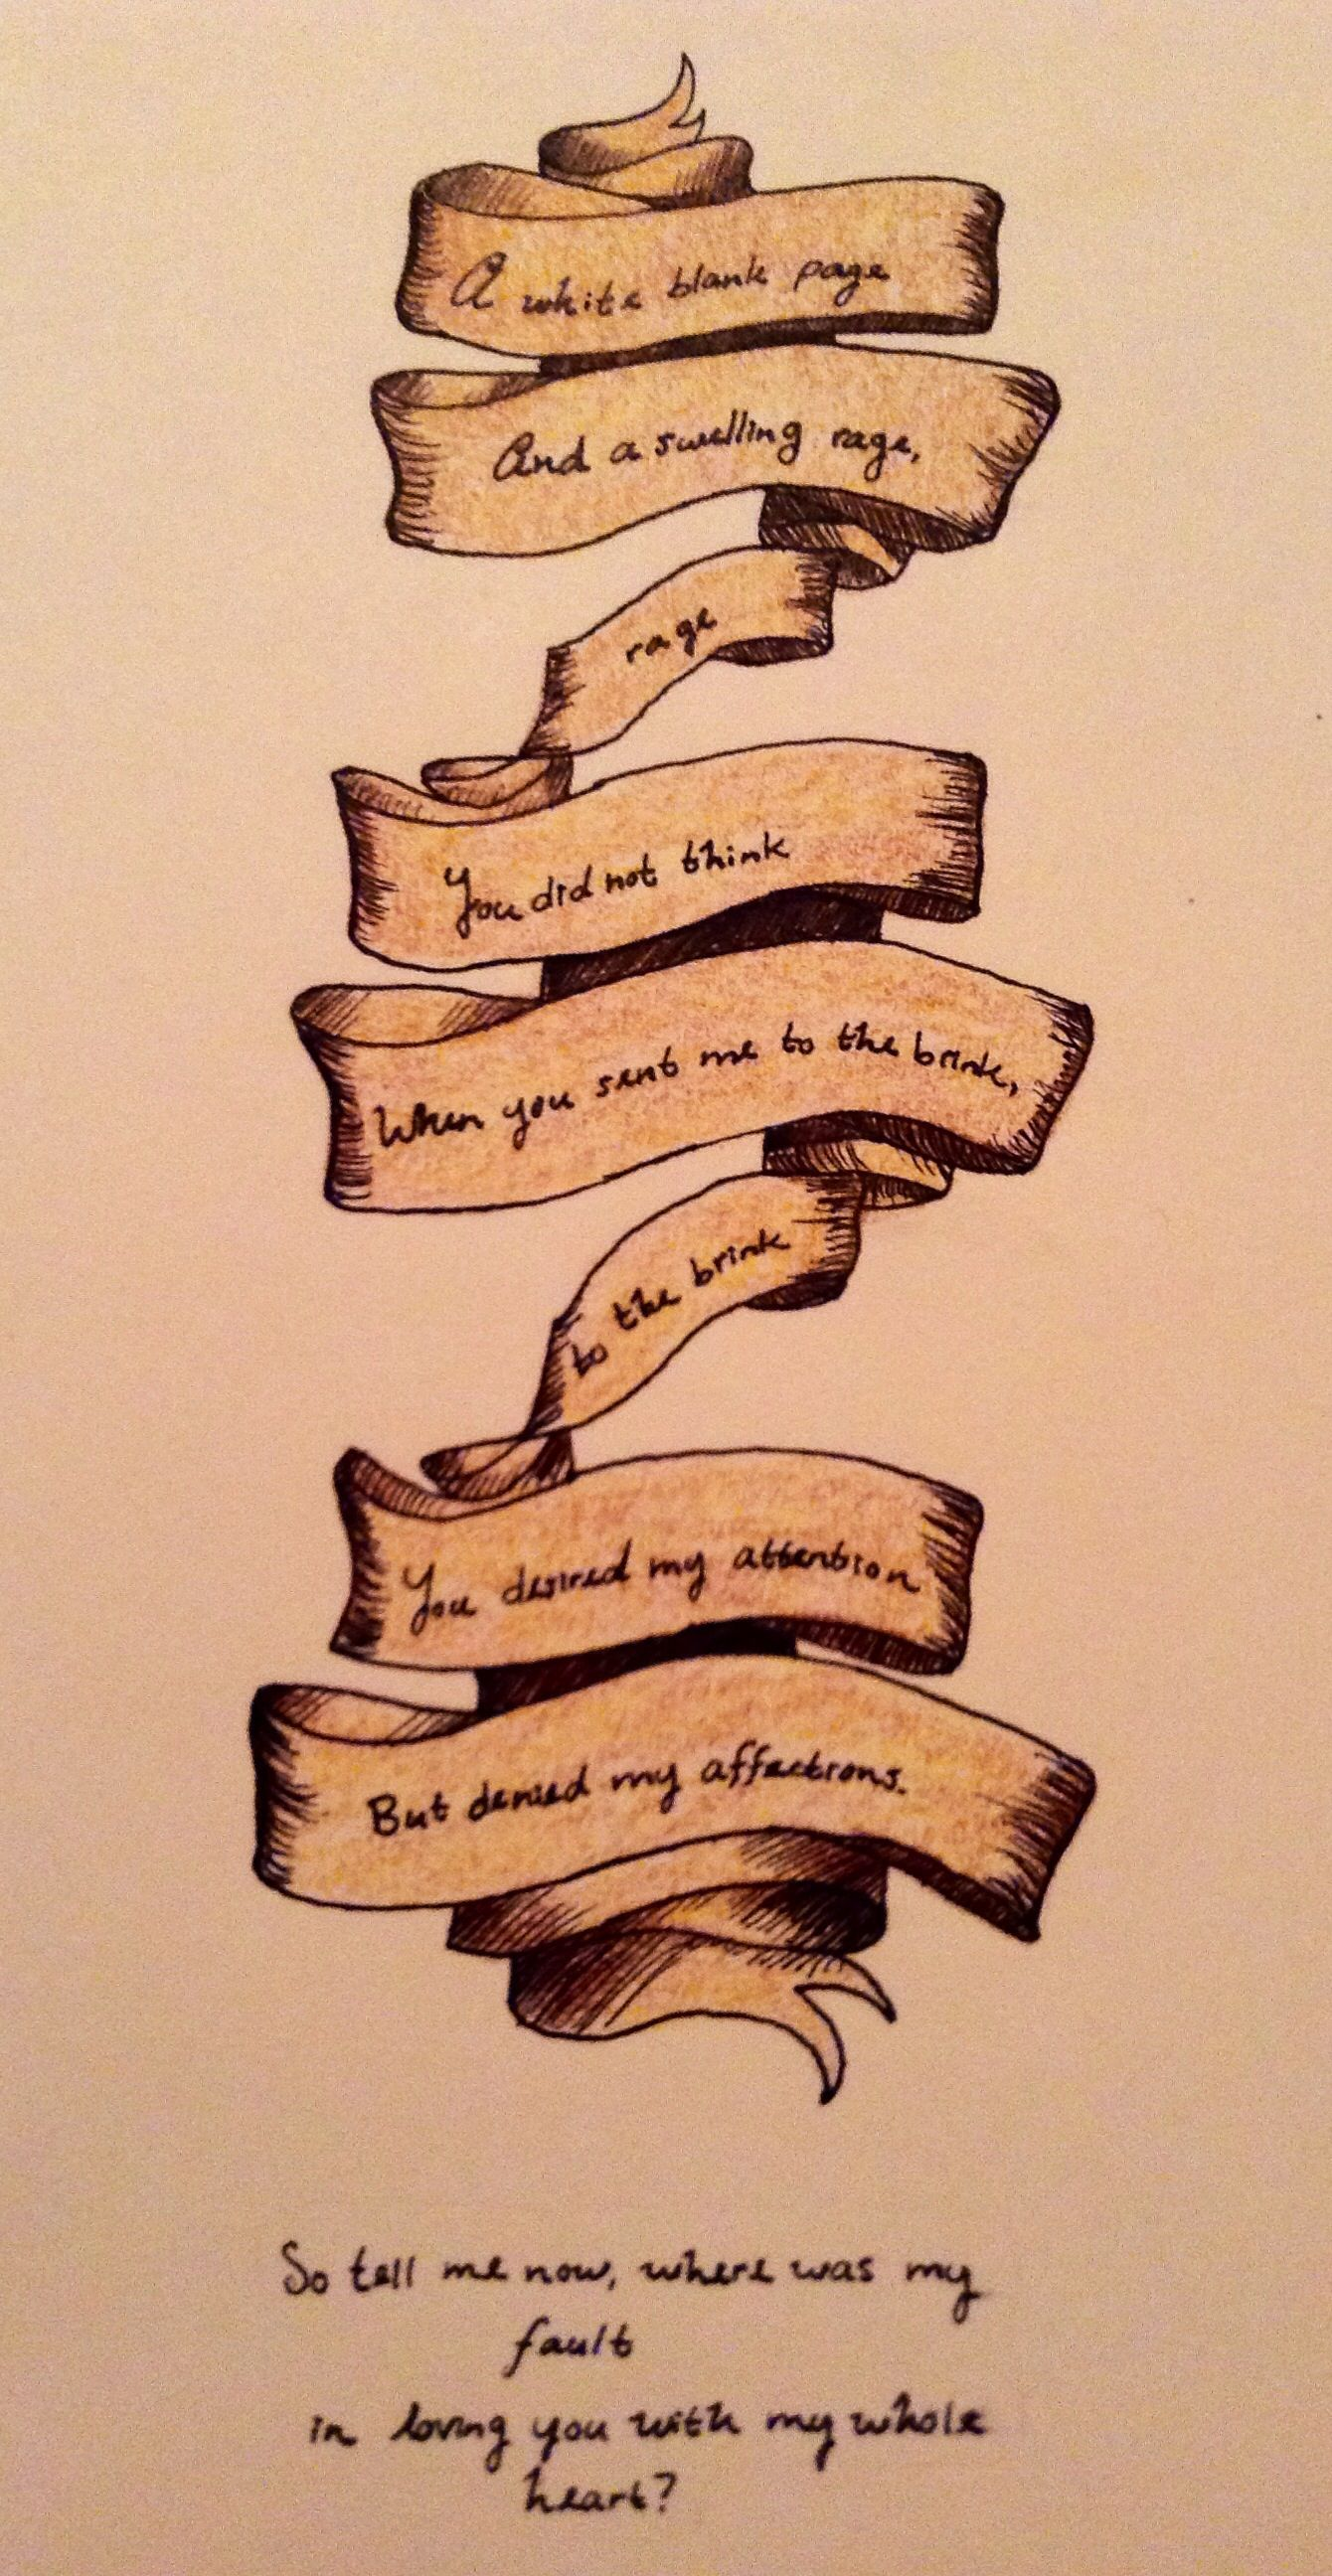 """White Blank Page"""" by Mumford and Sons lyrics done by me with ink"""